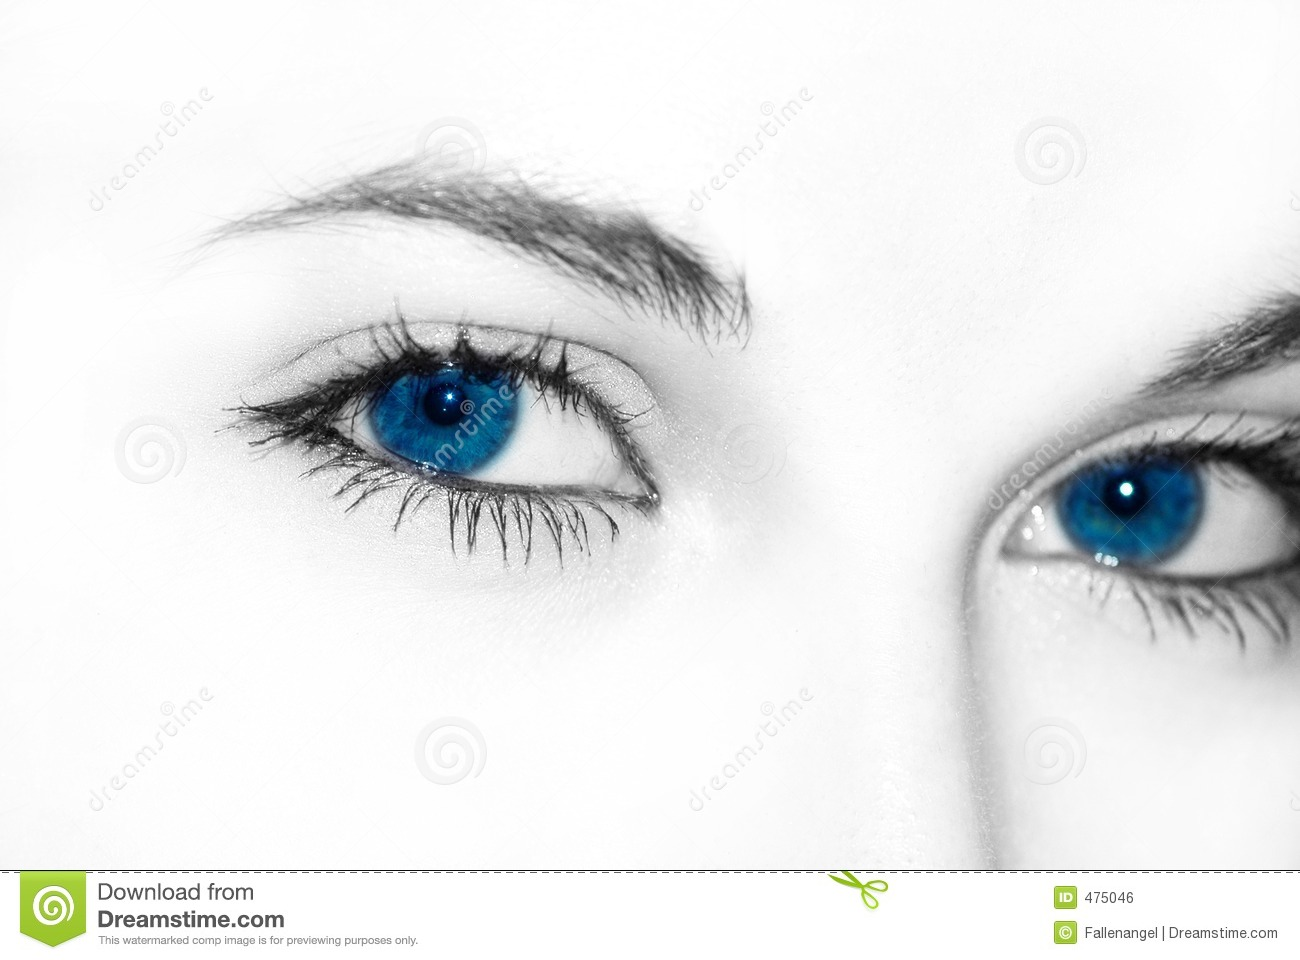 blue eye online dating In 2015, the fbi received 12,509 complaints related to online-dating fraud, with losses of $2033 million  the wind was blowing through your hair, and your eyes held the fading.